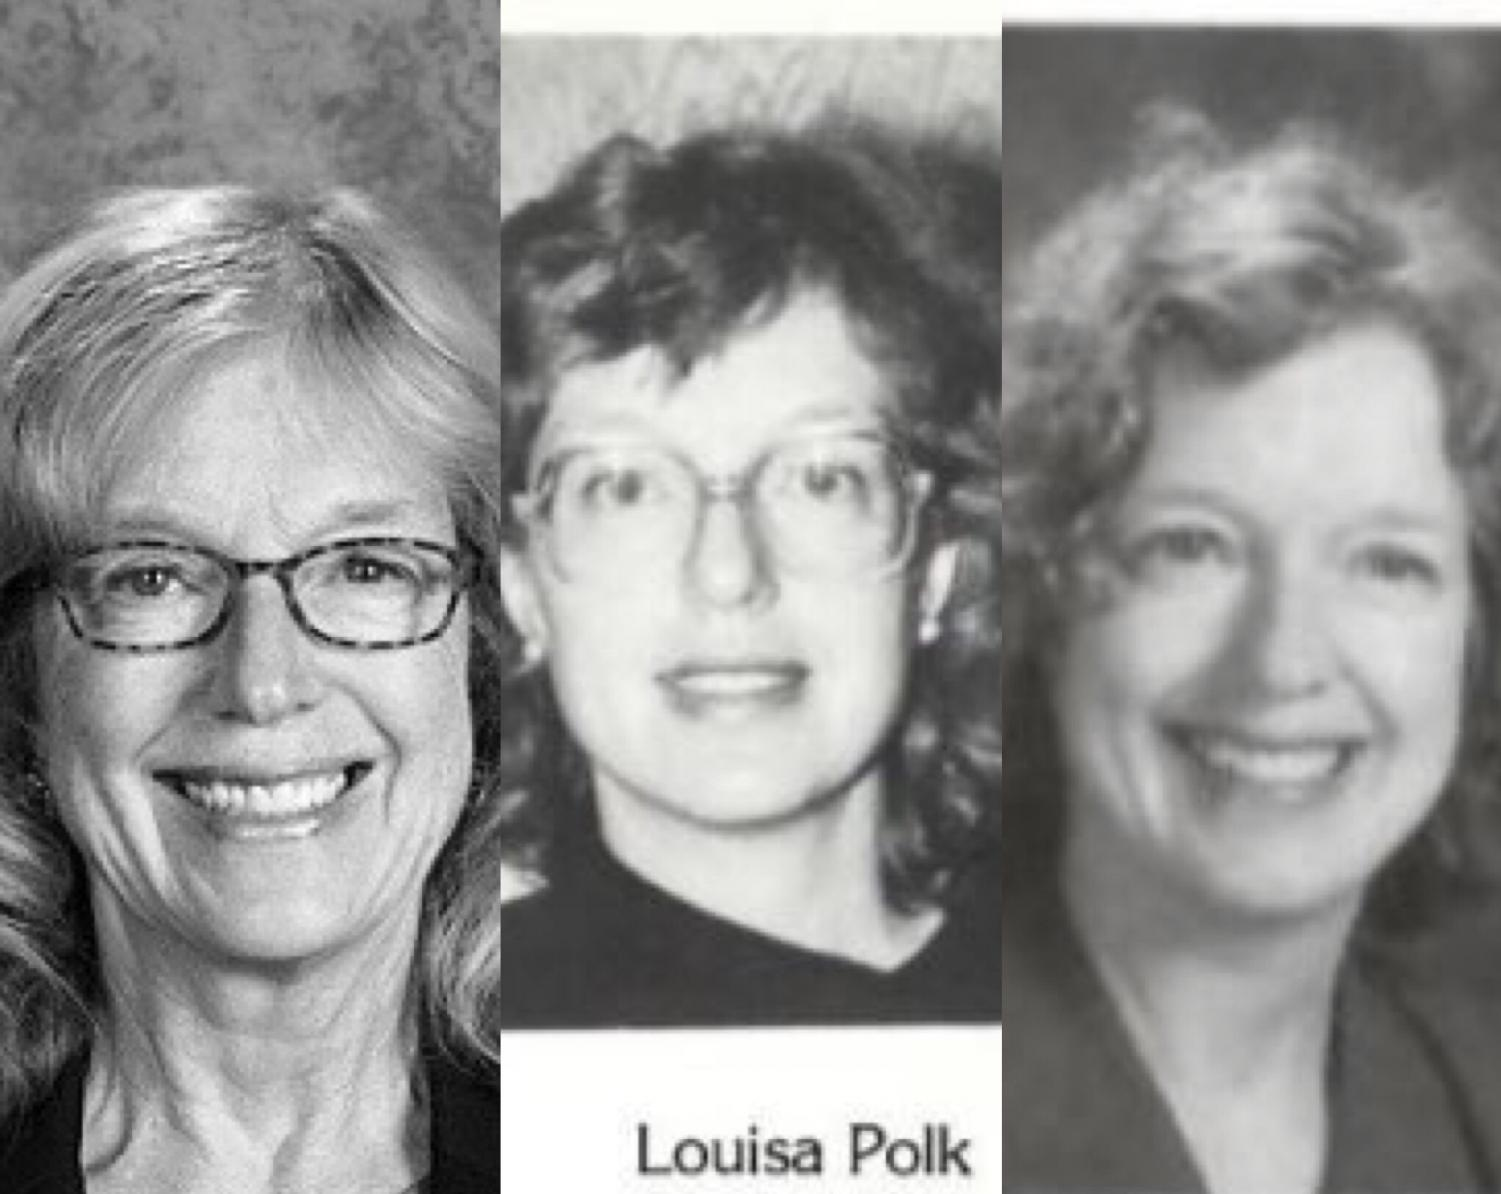 Ms. Polk will retire this year after 34 years of teaching at SPA.